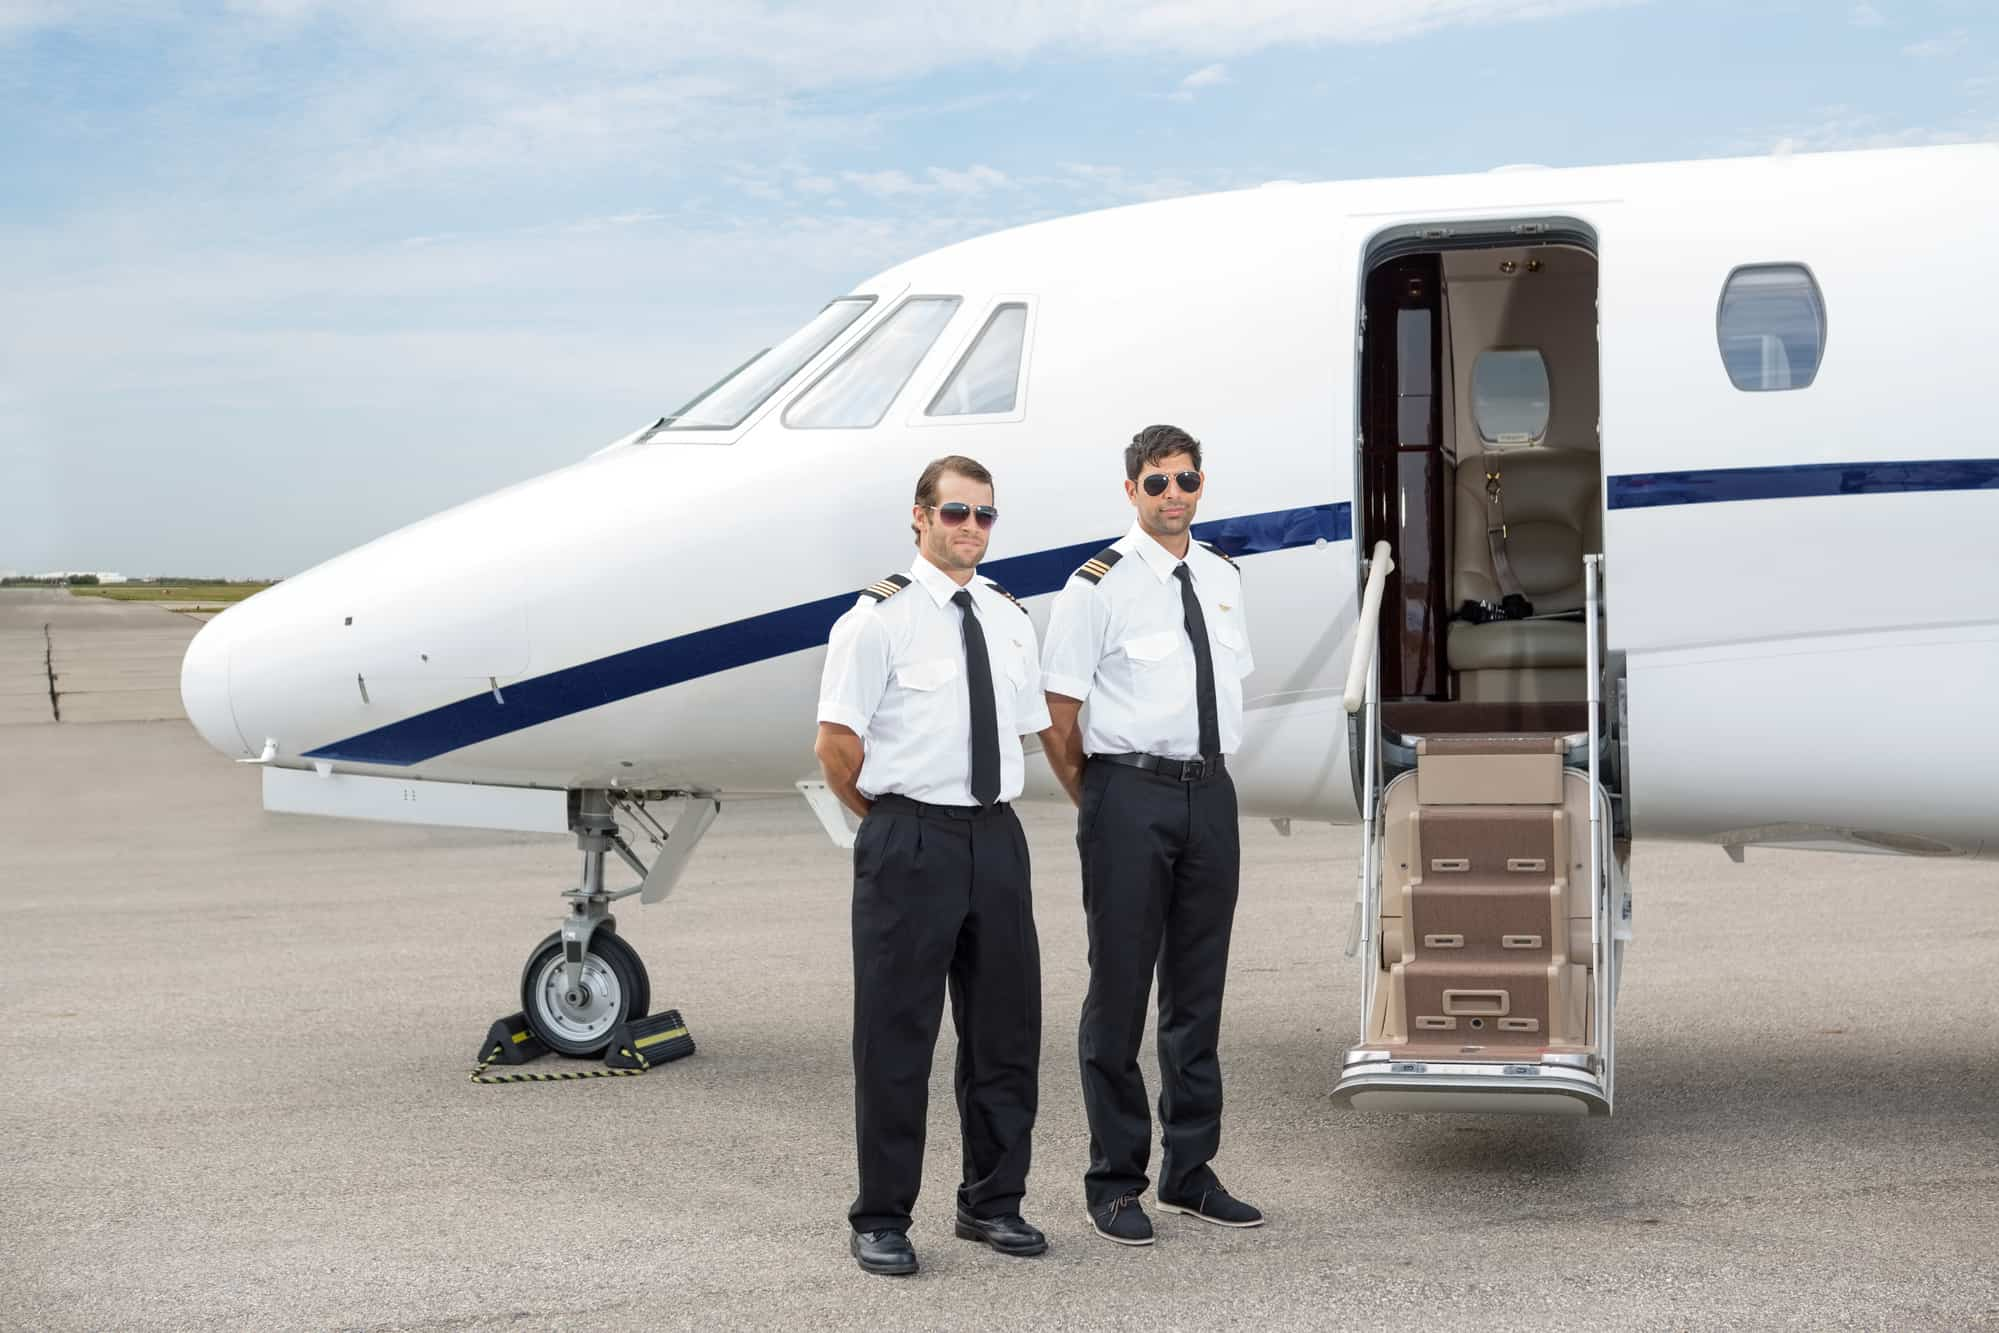 two private jet pilots waiting next to a private jet